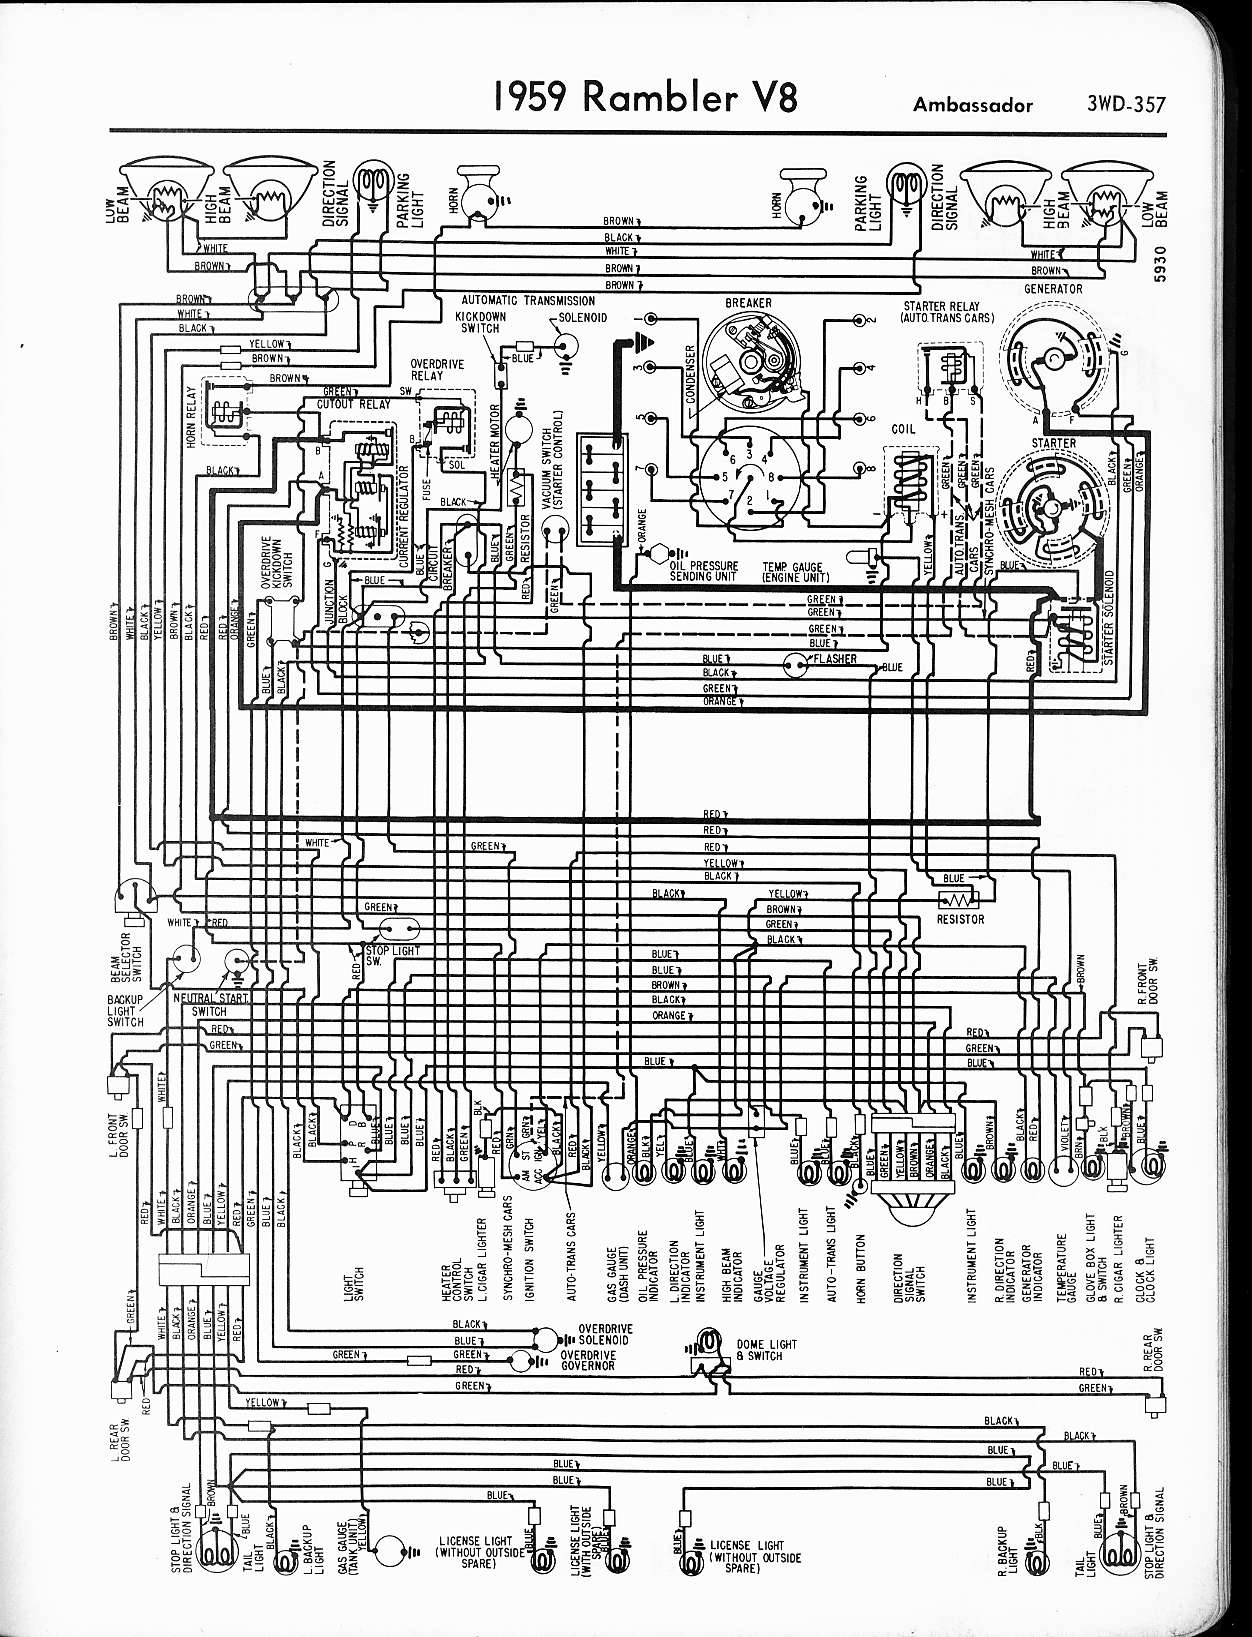 1960 Rambler American Wiring Diagrams Archive Of Automotive Bea The Old Car Manual Project Rh Oldcarmanualproject Com